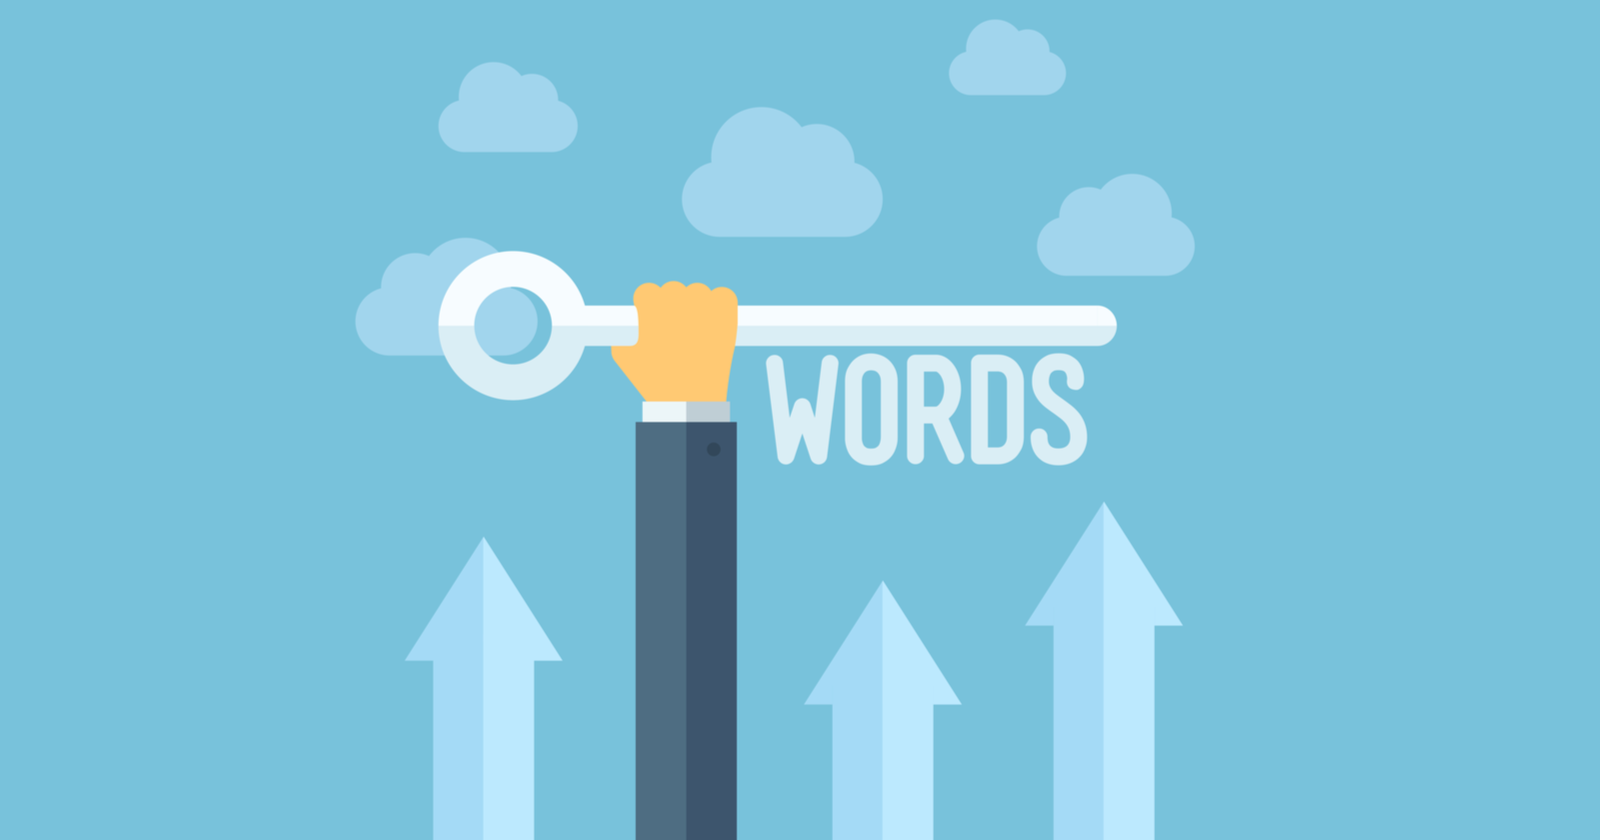 What kind of Keywords should I Use to Boost Sales for my Business